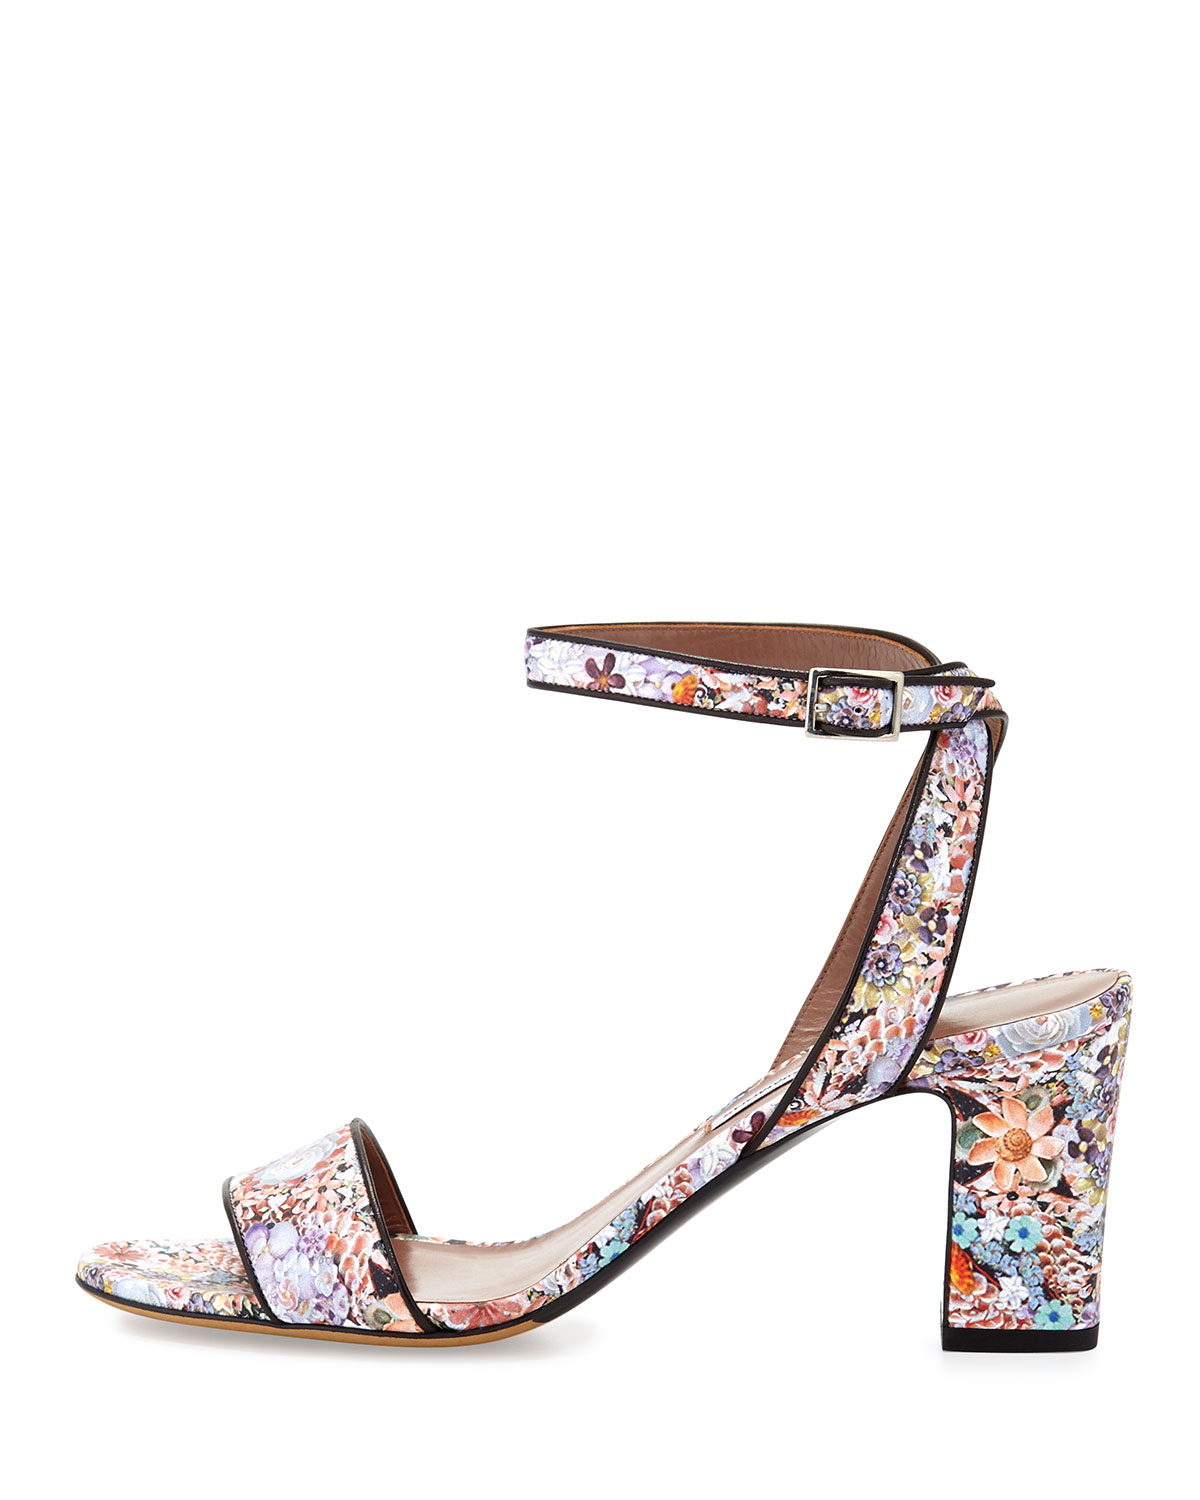 Tabitha Simmons Floral Leather Sandals